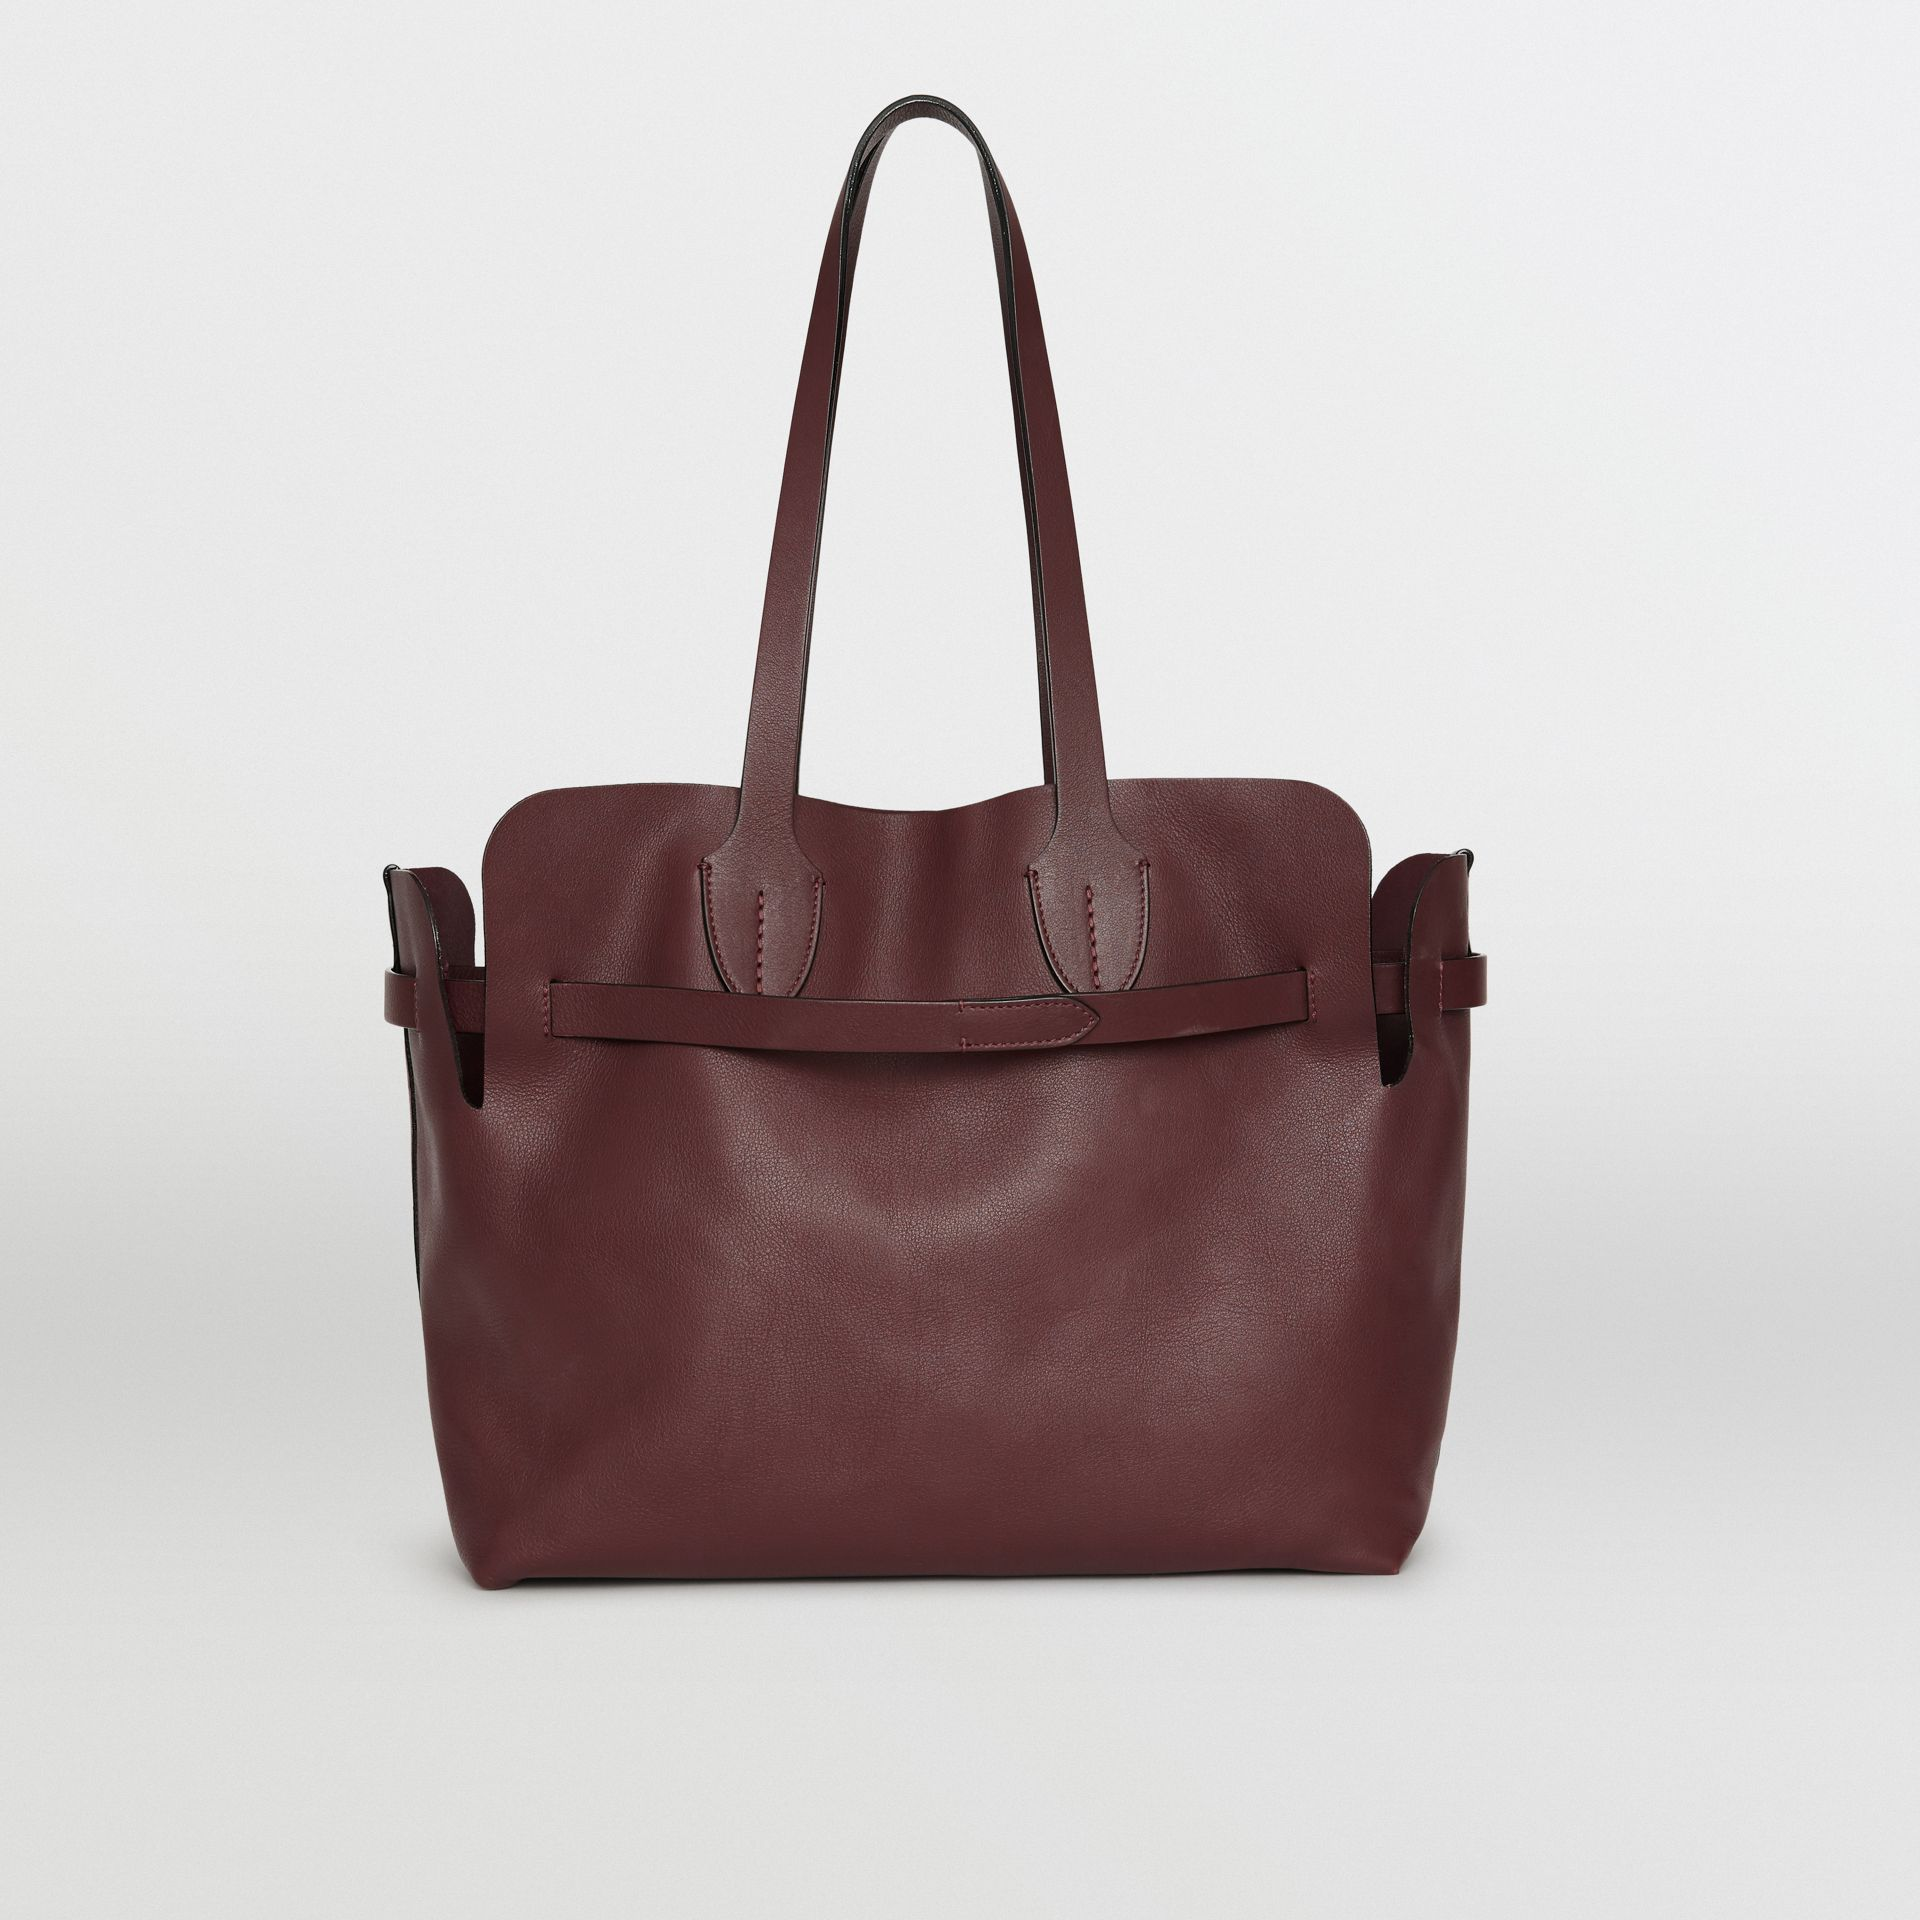 Sac The Belt moyen en cuir doux (Bordeaux Intense) - Femme | Burberry Canada - photo de la galerie 5